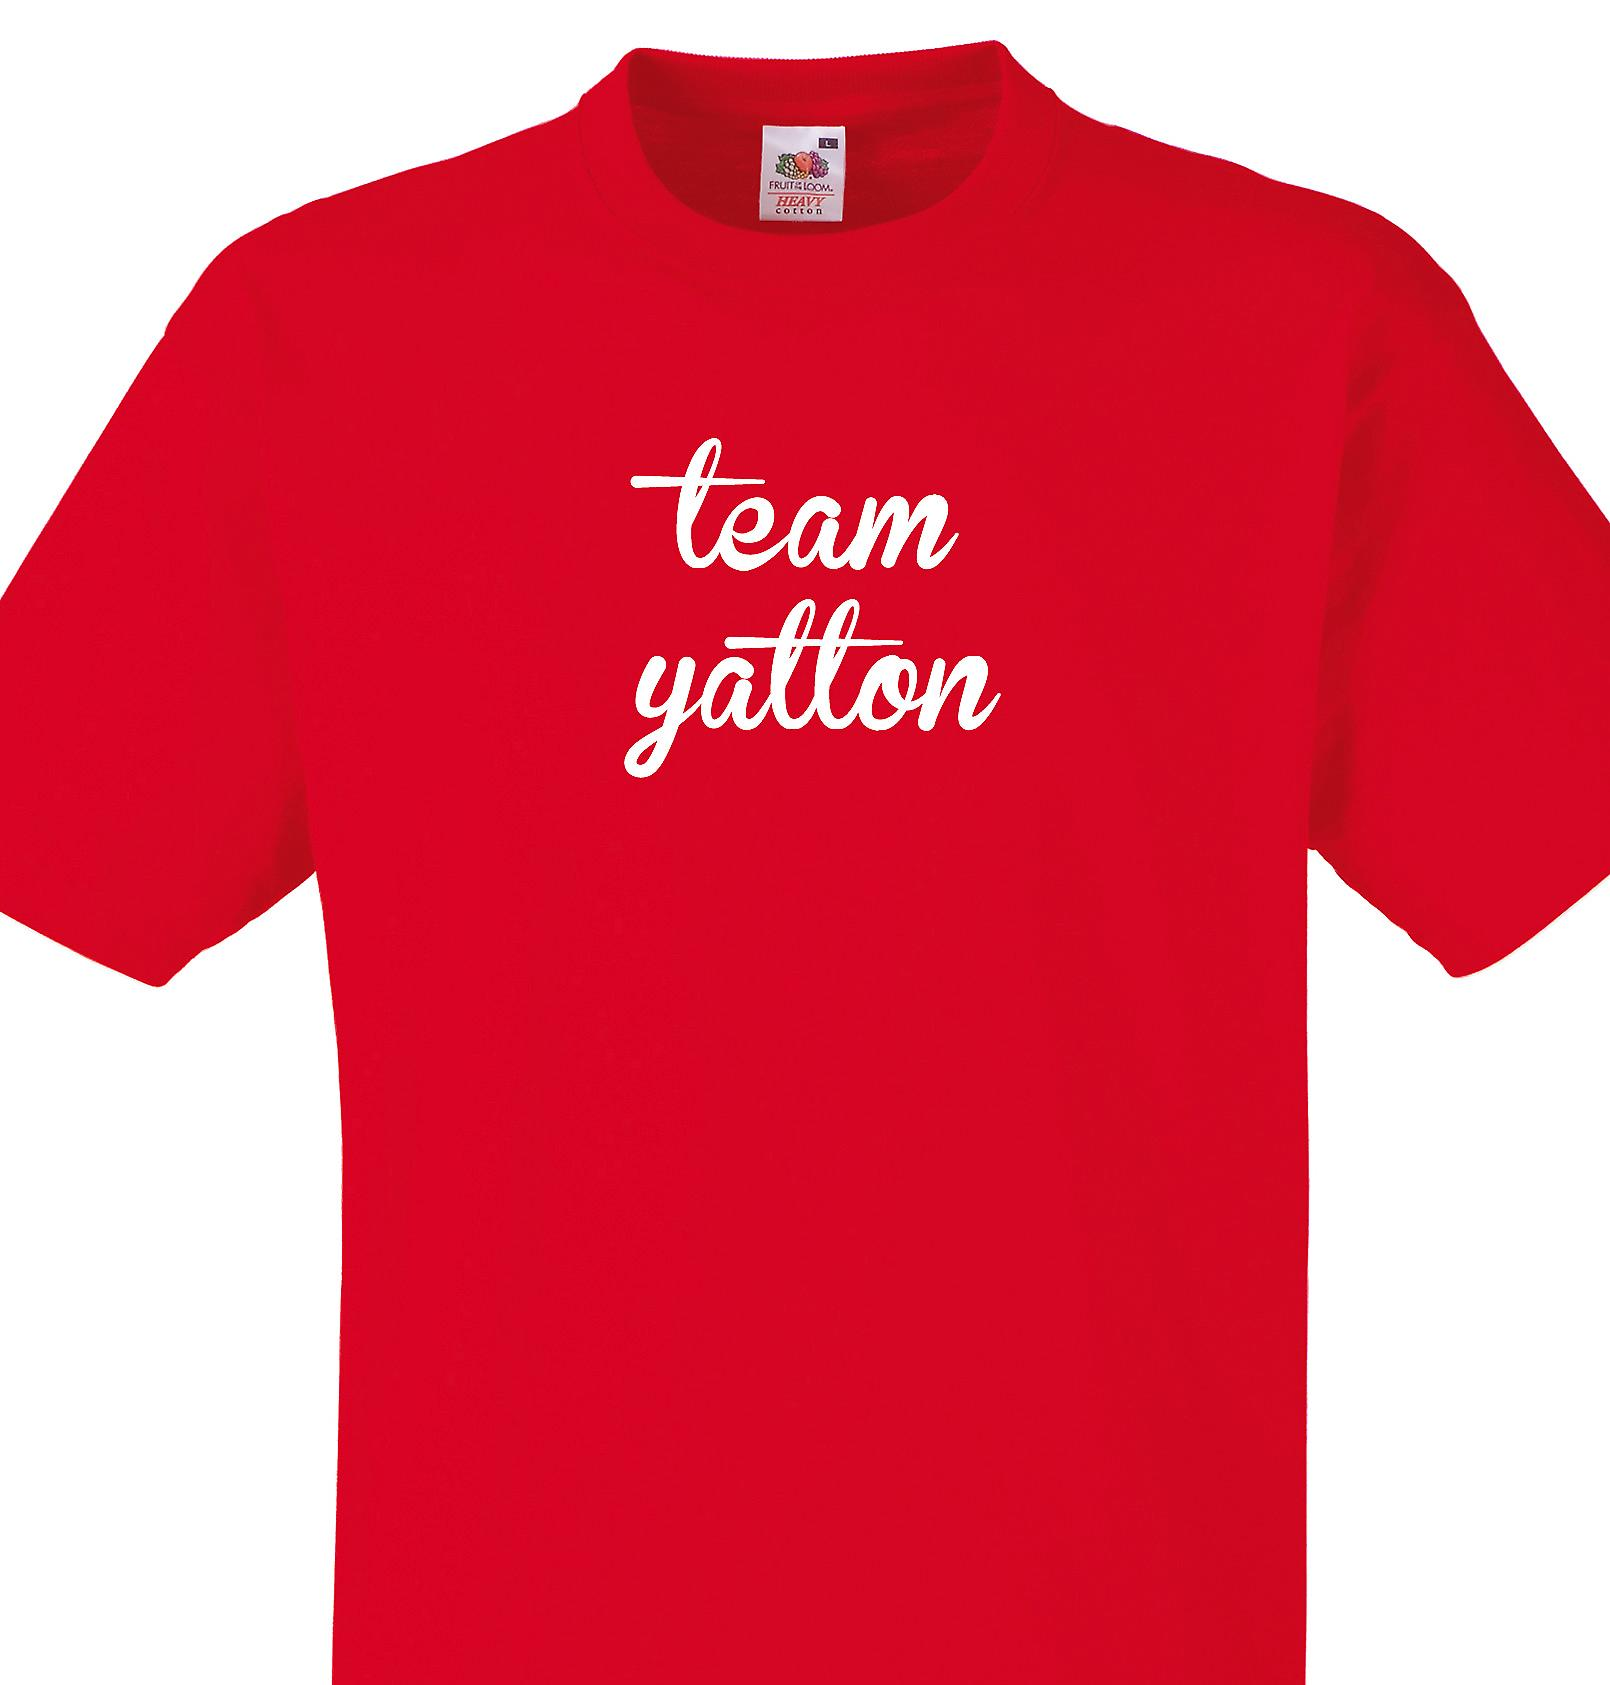 Team Yatton Red T shirt